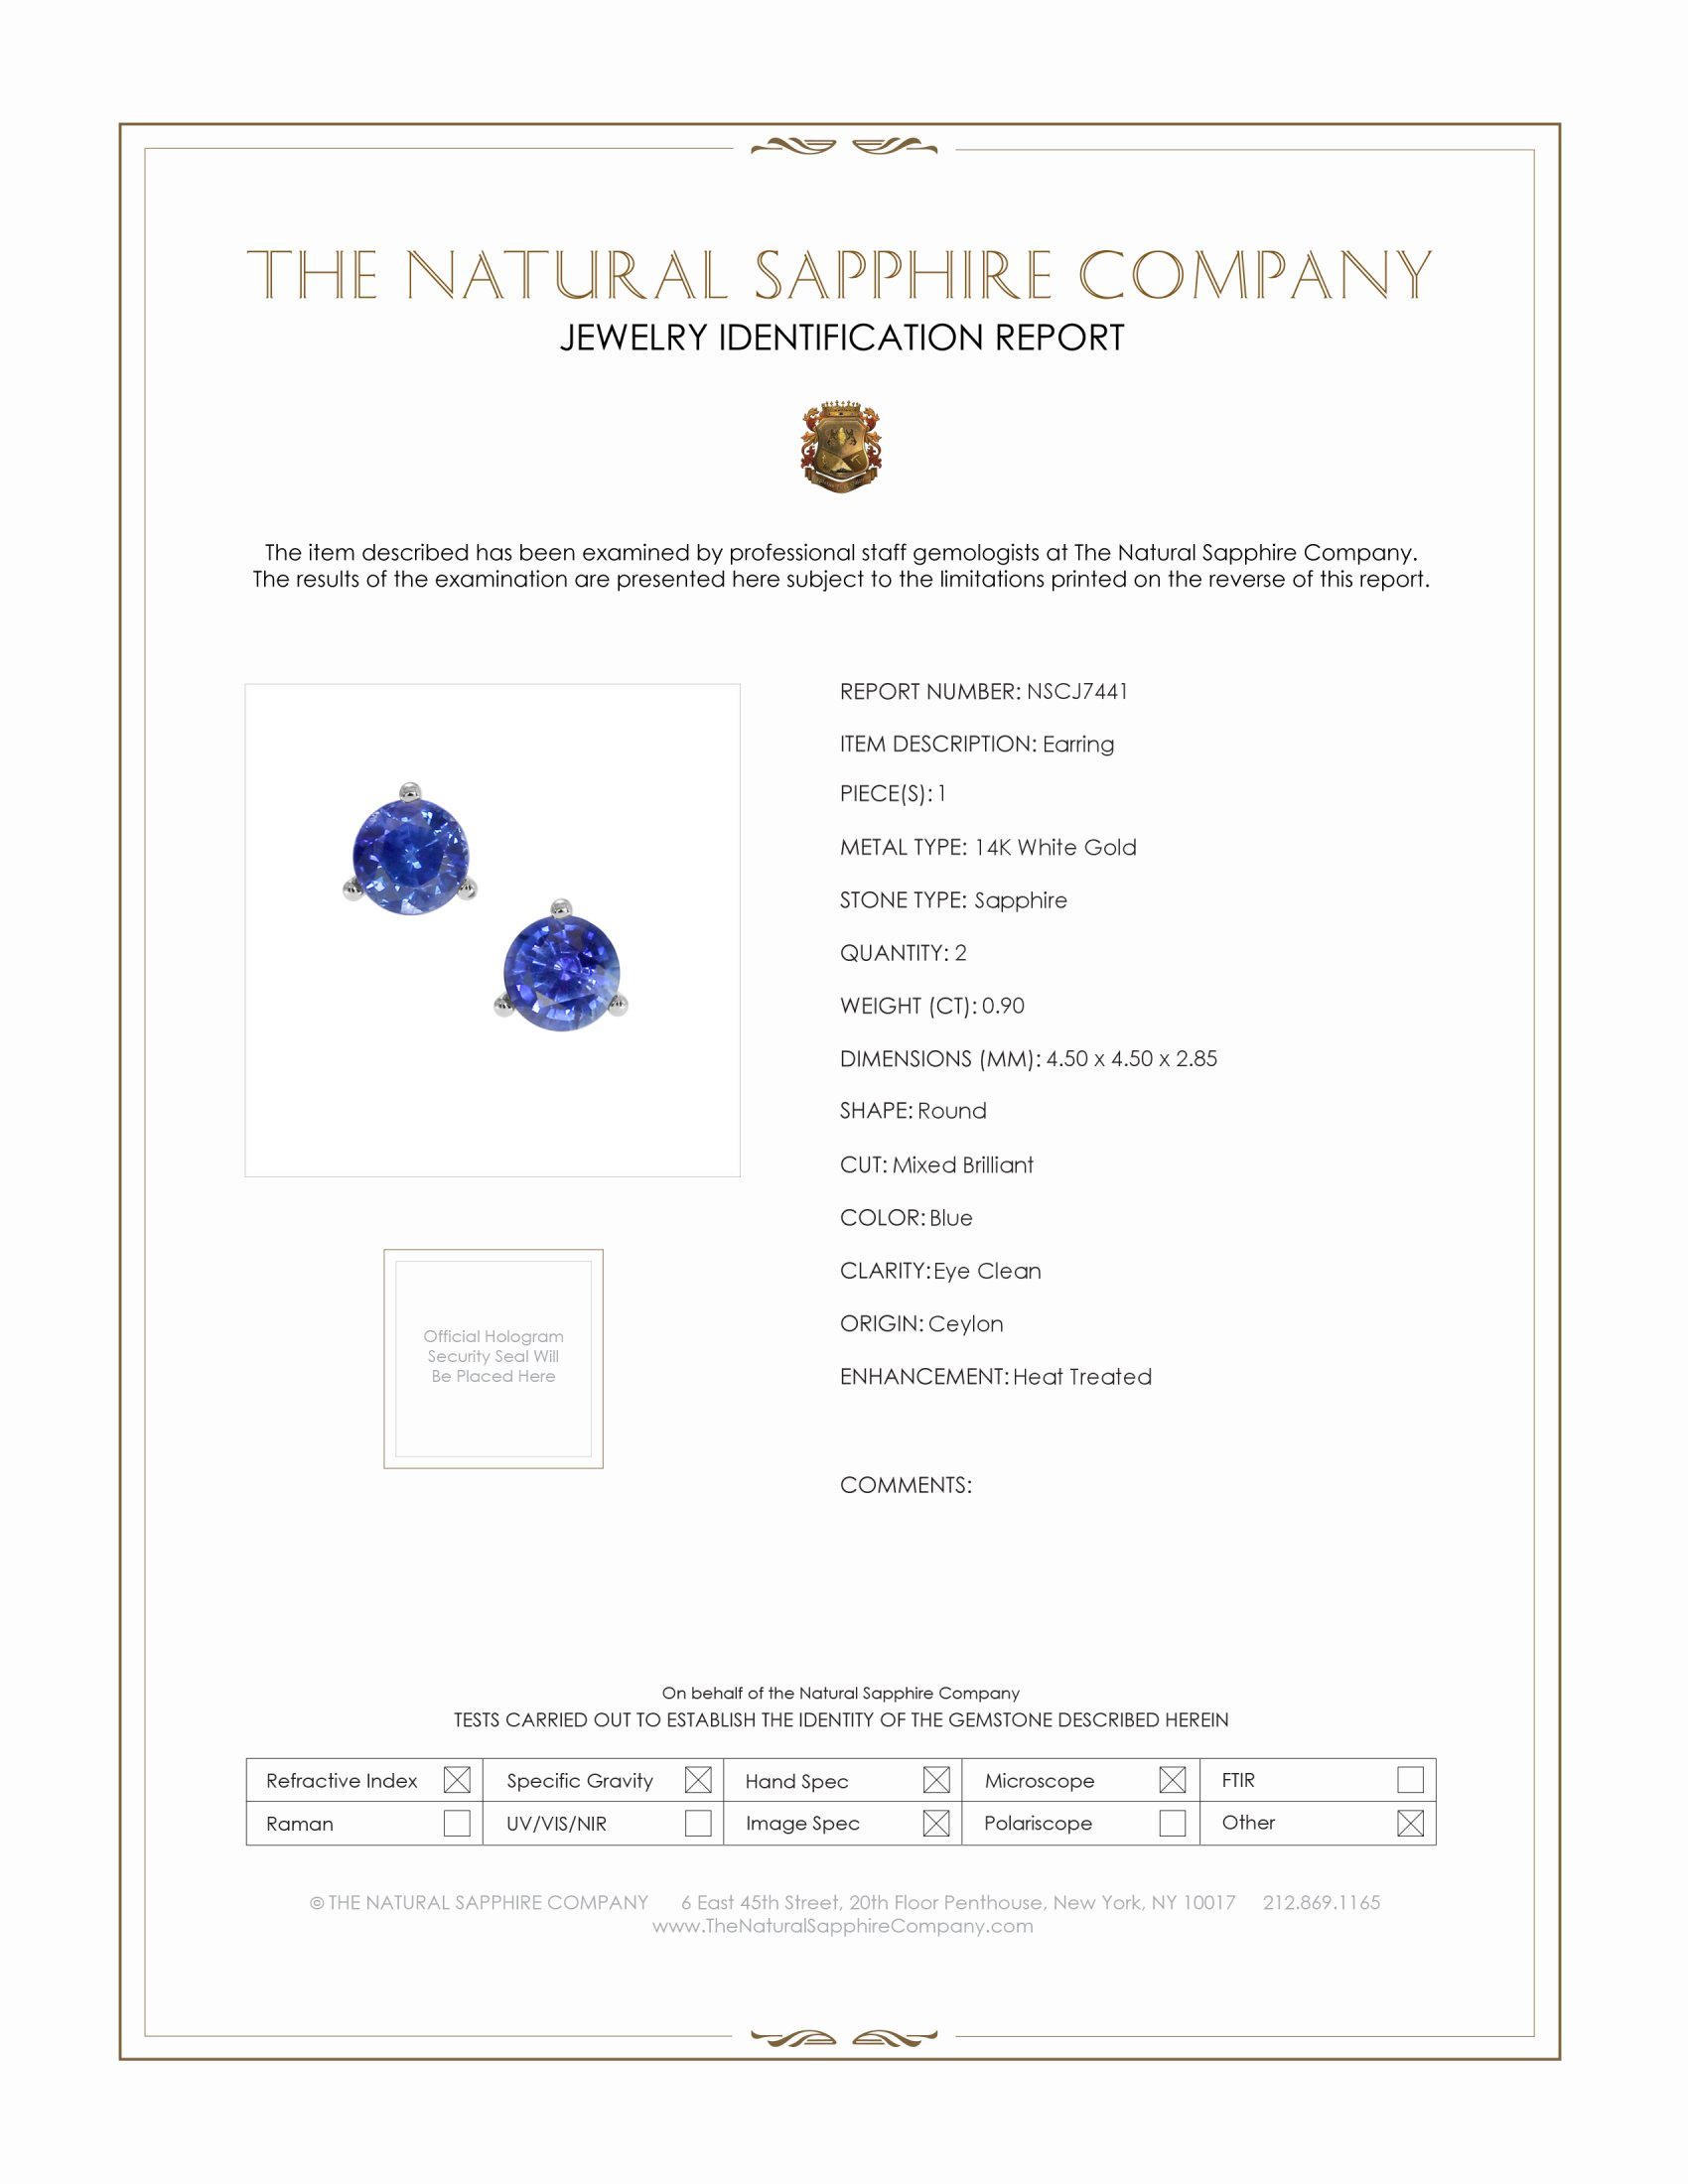 0.90ct Blue Sapphire Earring Certification